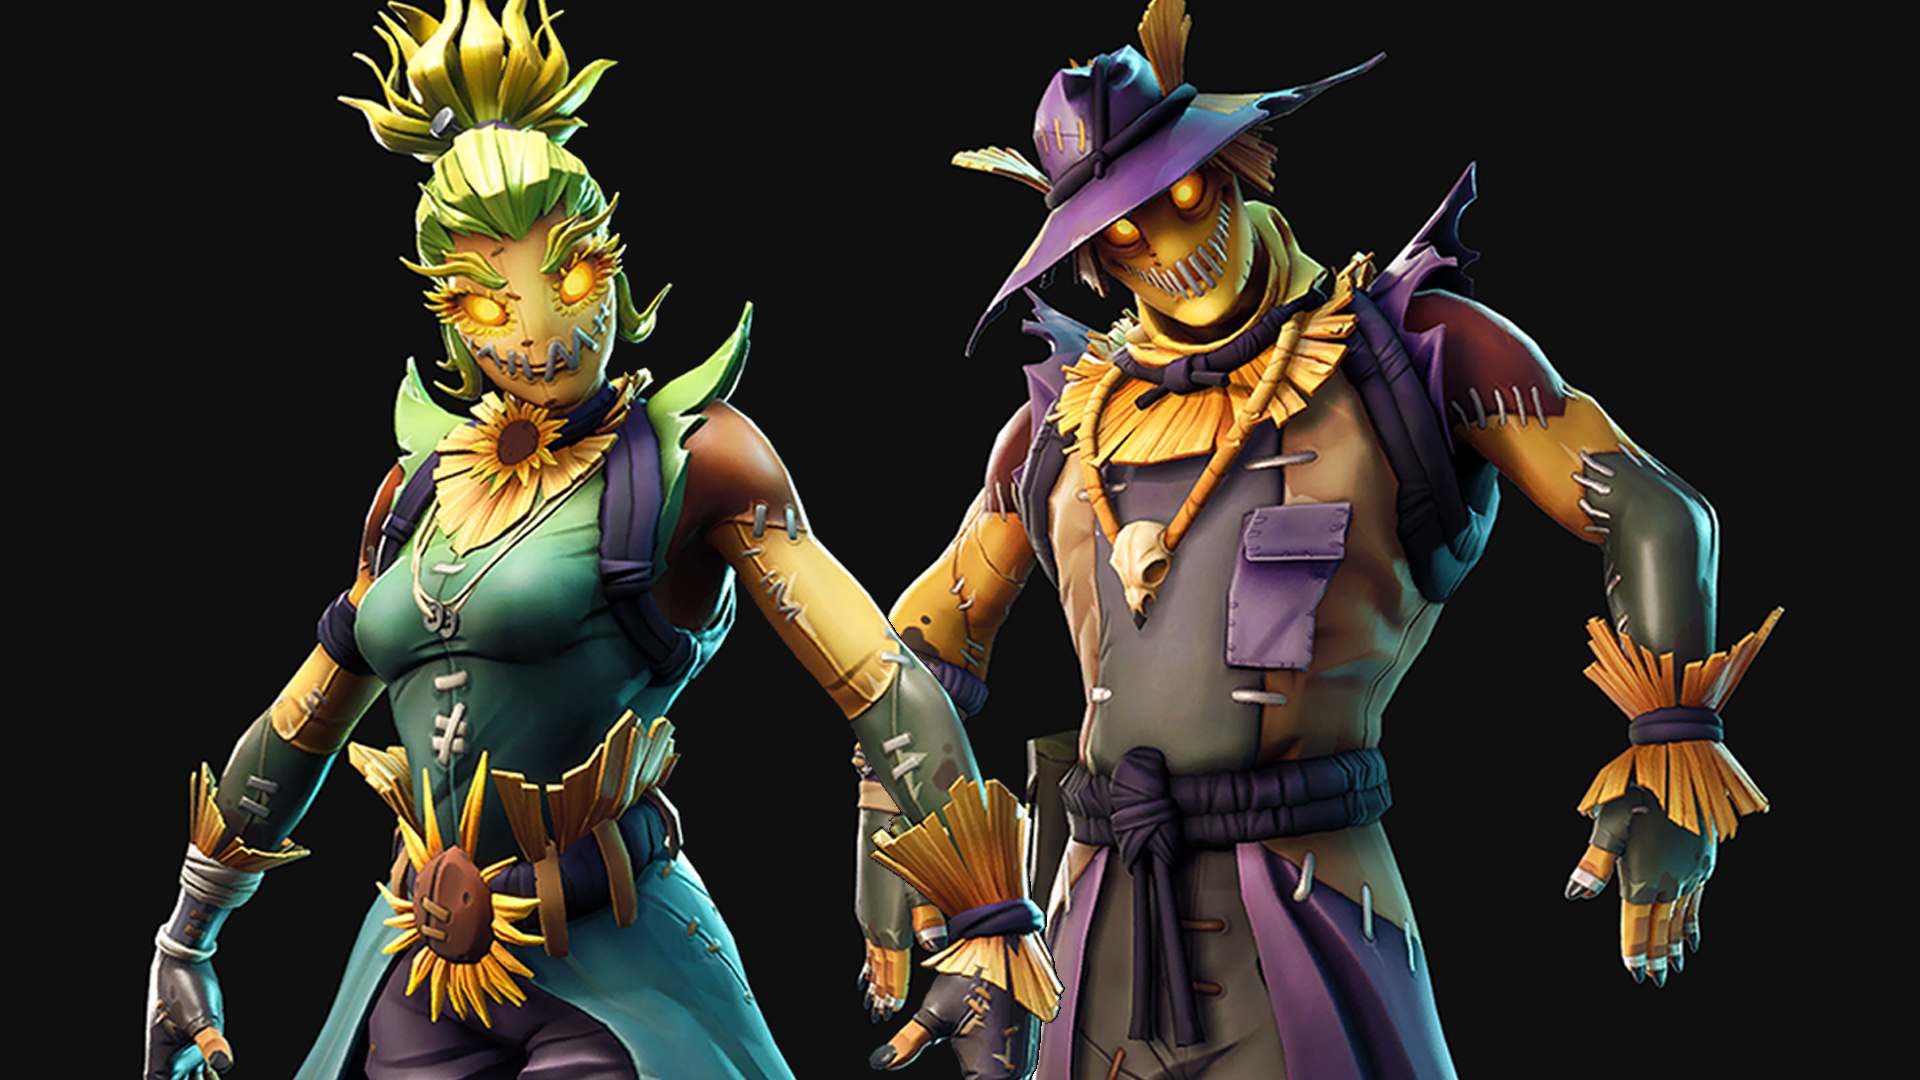 New Fortnite Halloween Skins 2018 4296 Wallpapers and Stock 1920x1080